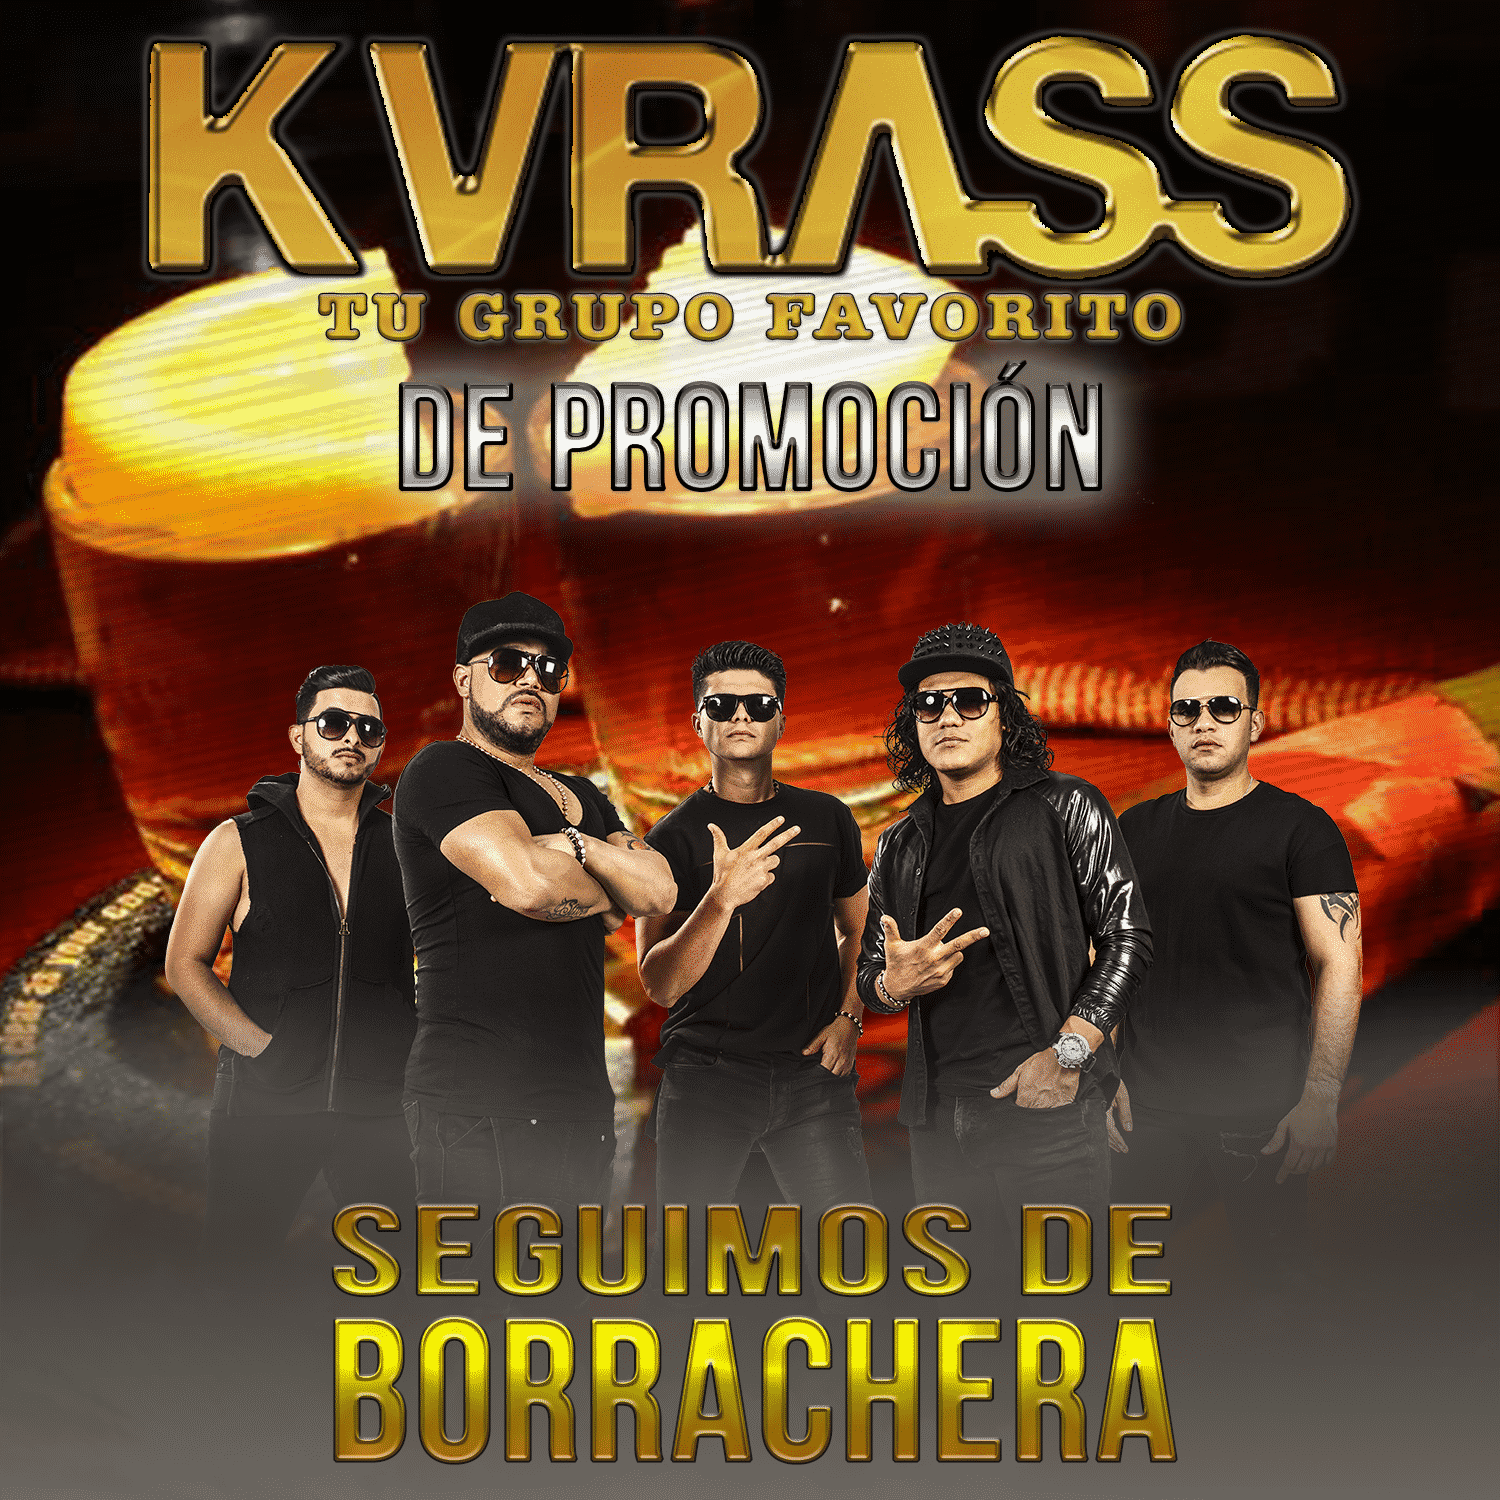 Grupo Kvrass Seguimos De Borrachera